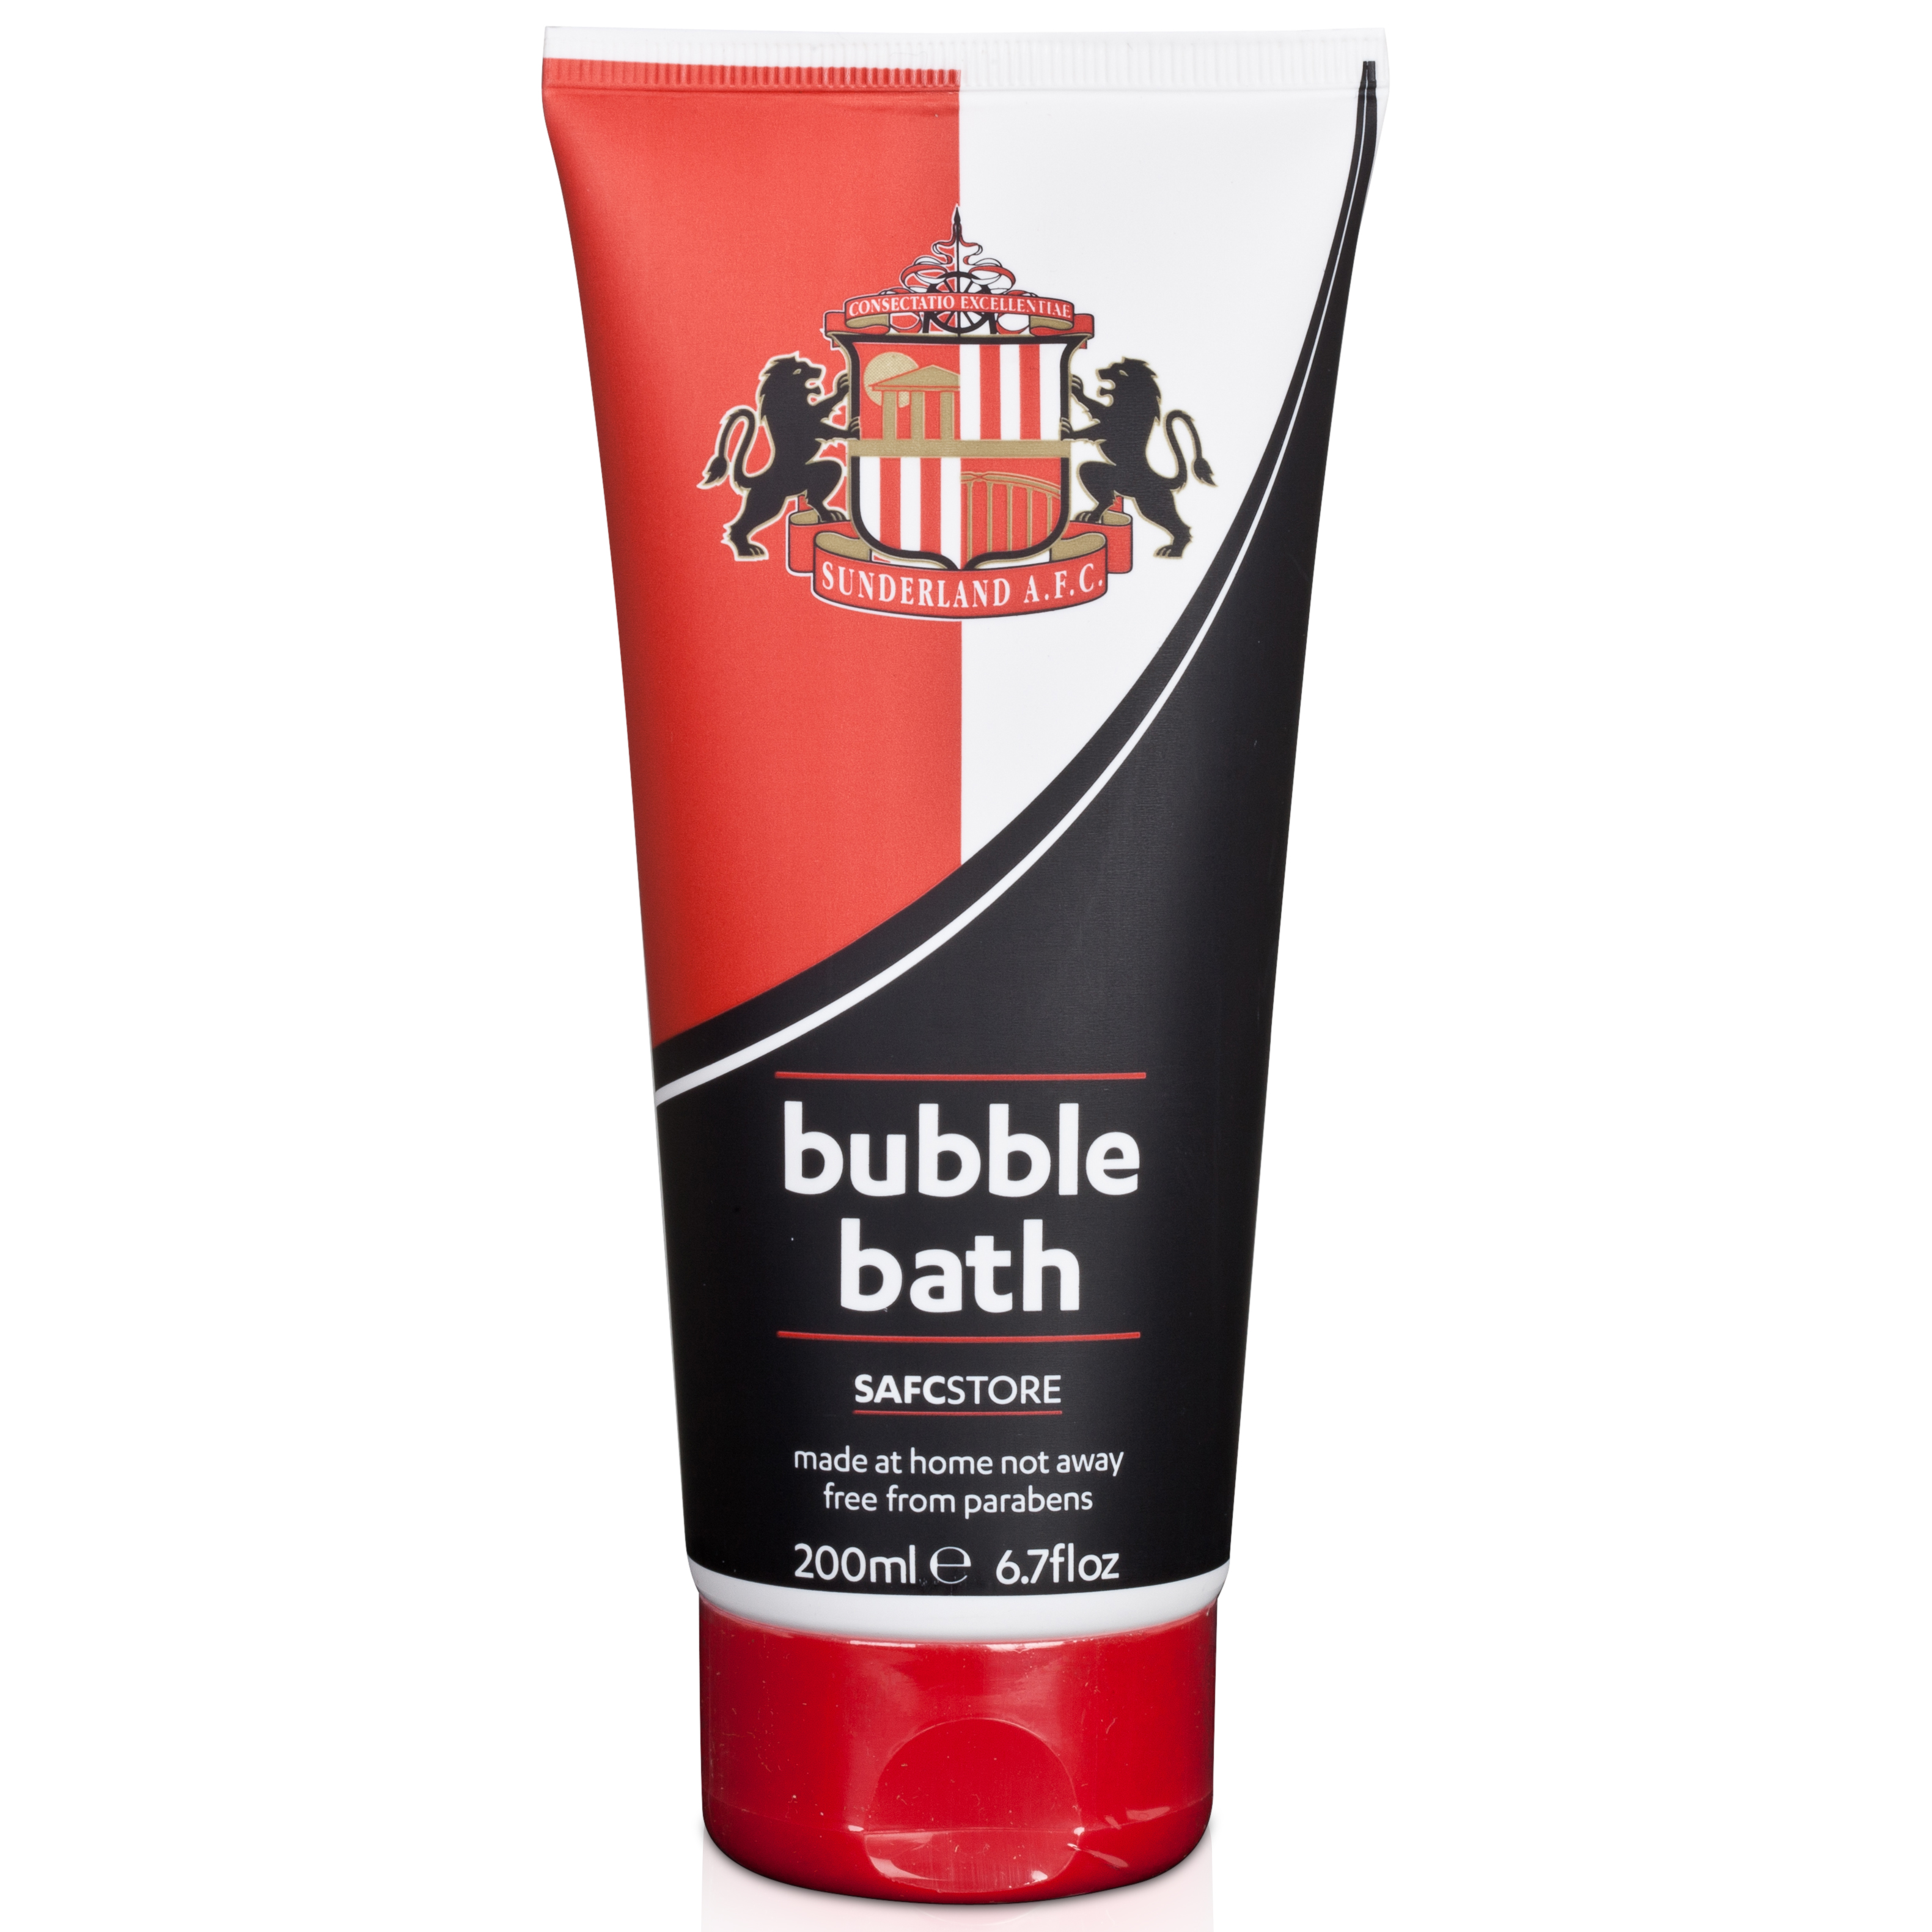 Sunderland Bubble Bath